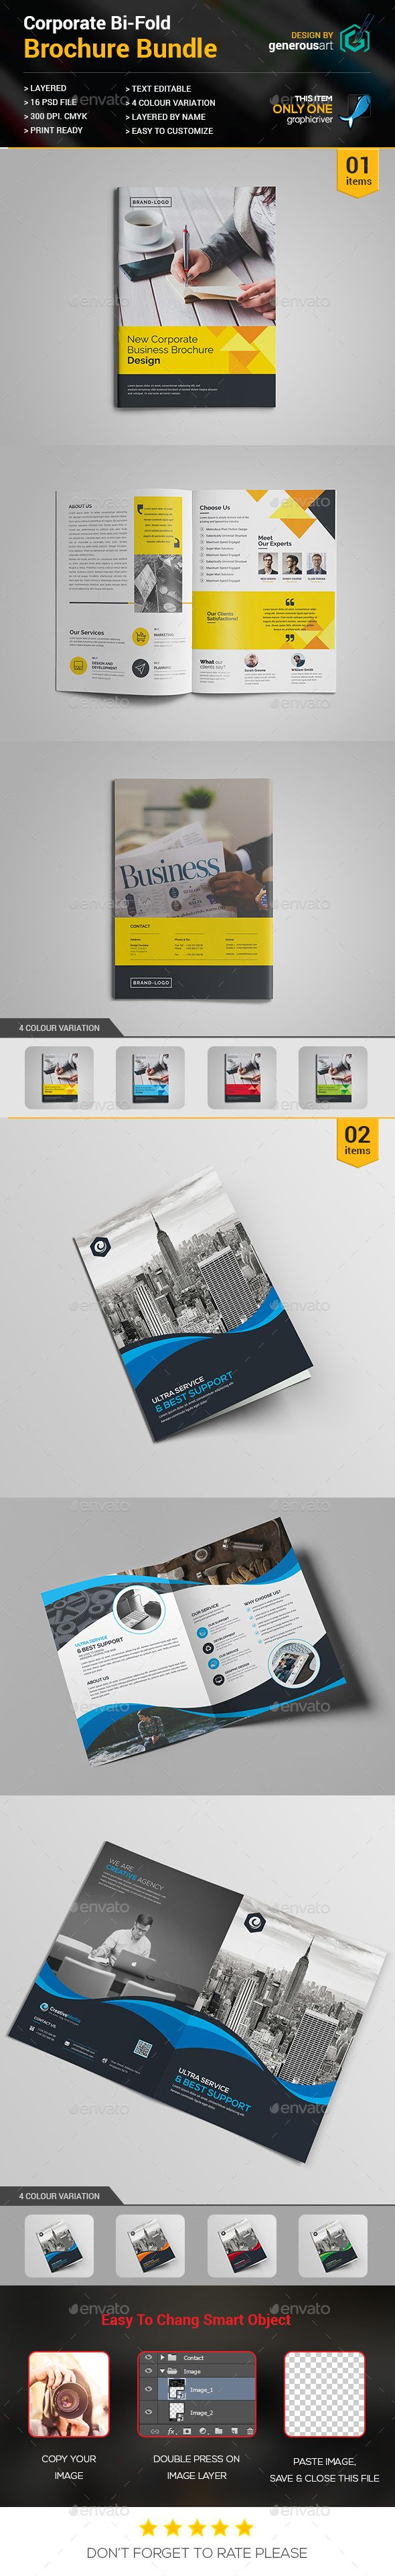 Bi-fold Bundle_2 in 1 - PSD Template • Only available here ➝ http://graphicriver.net/item/bifold-bundle_2-in-1/16888696?ref=pxcr